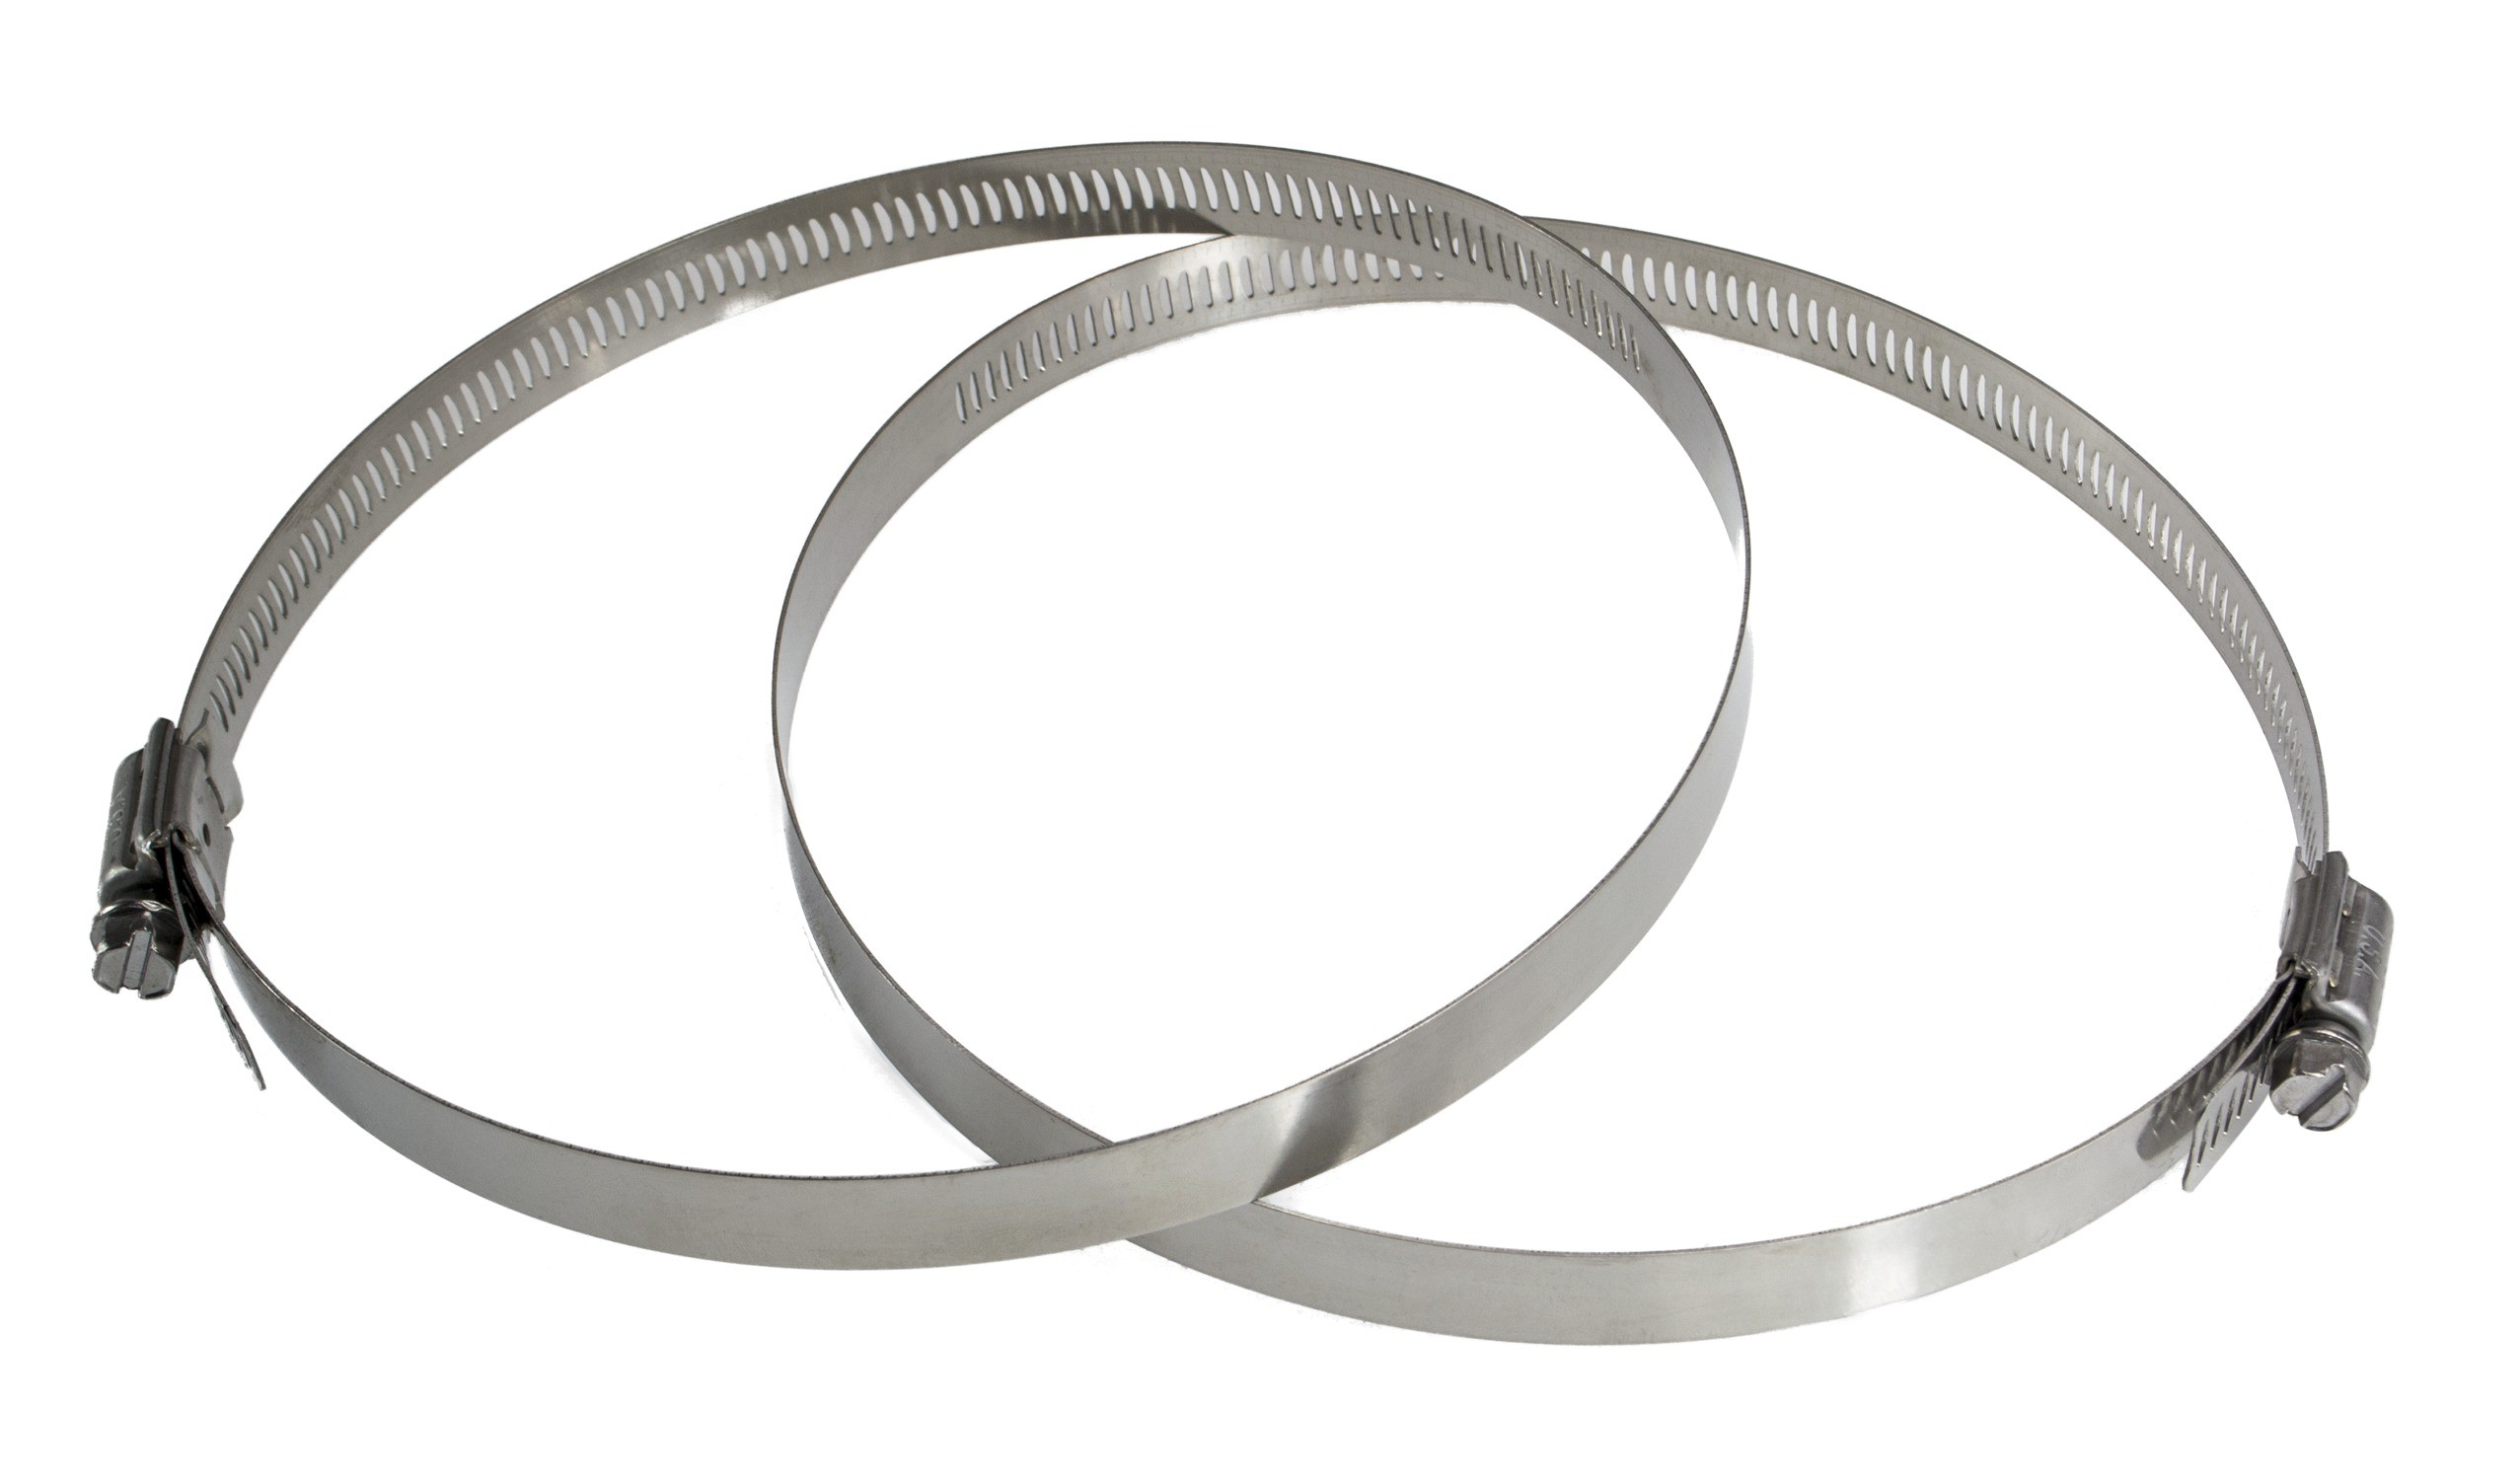 SP Bel-Art Clamping Rings; For 6 in. Glove Ports (Pack of 2)